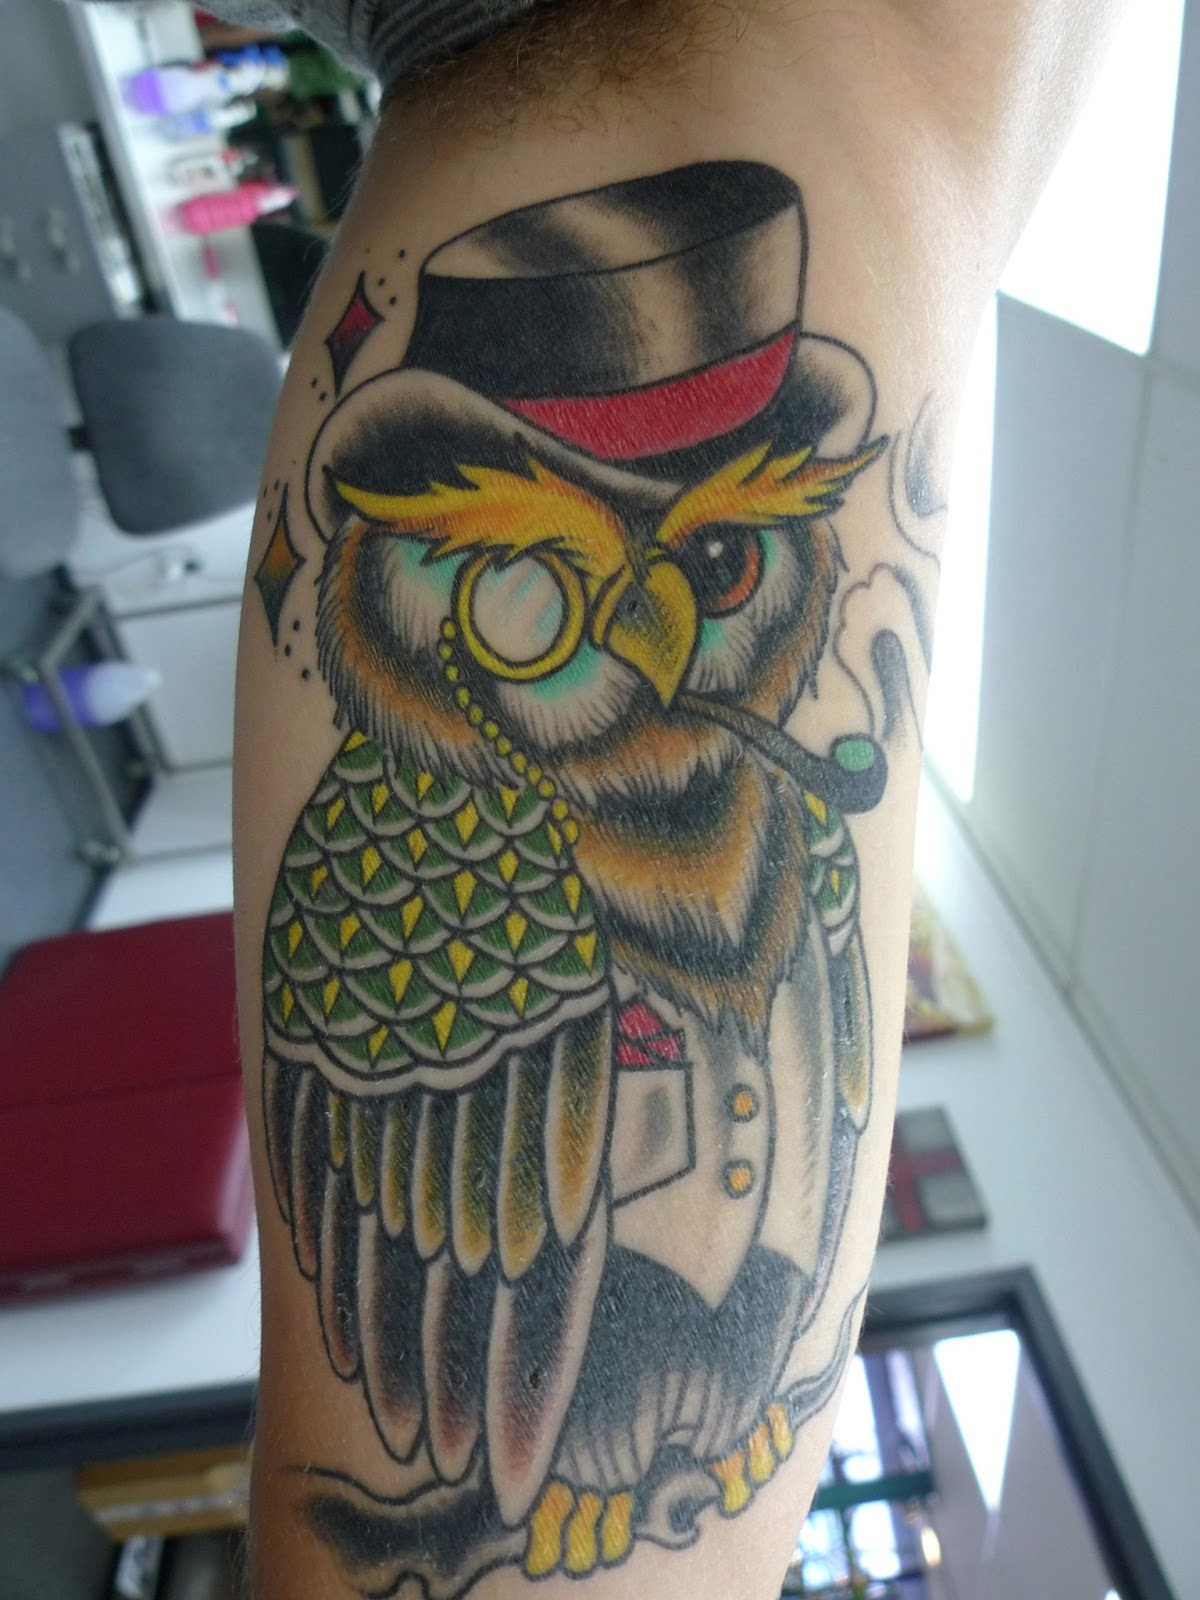 Holy skin tattoo max 39 s owl almost healed one week on for Tattoo shops in queenstown nz